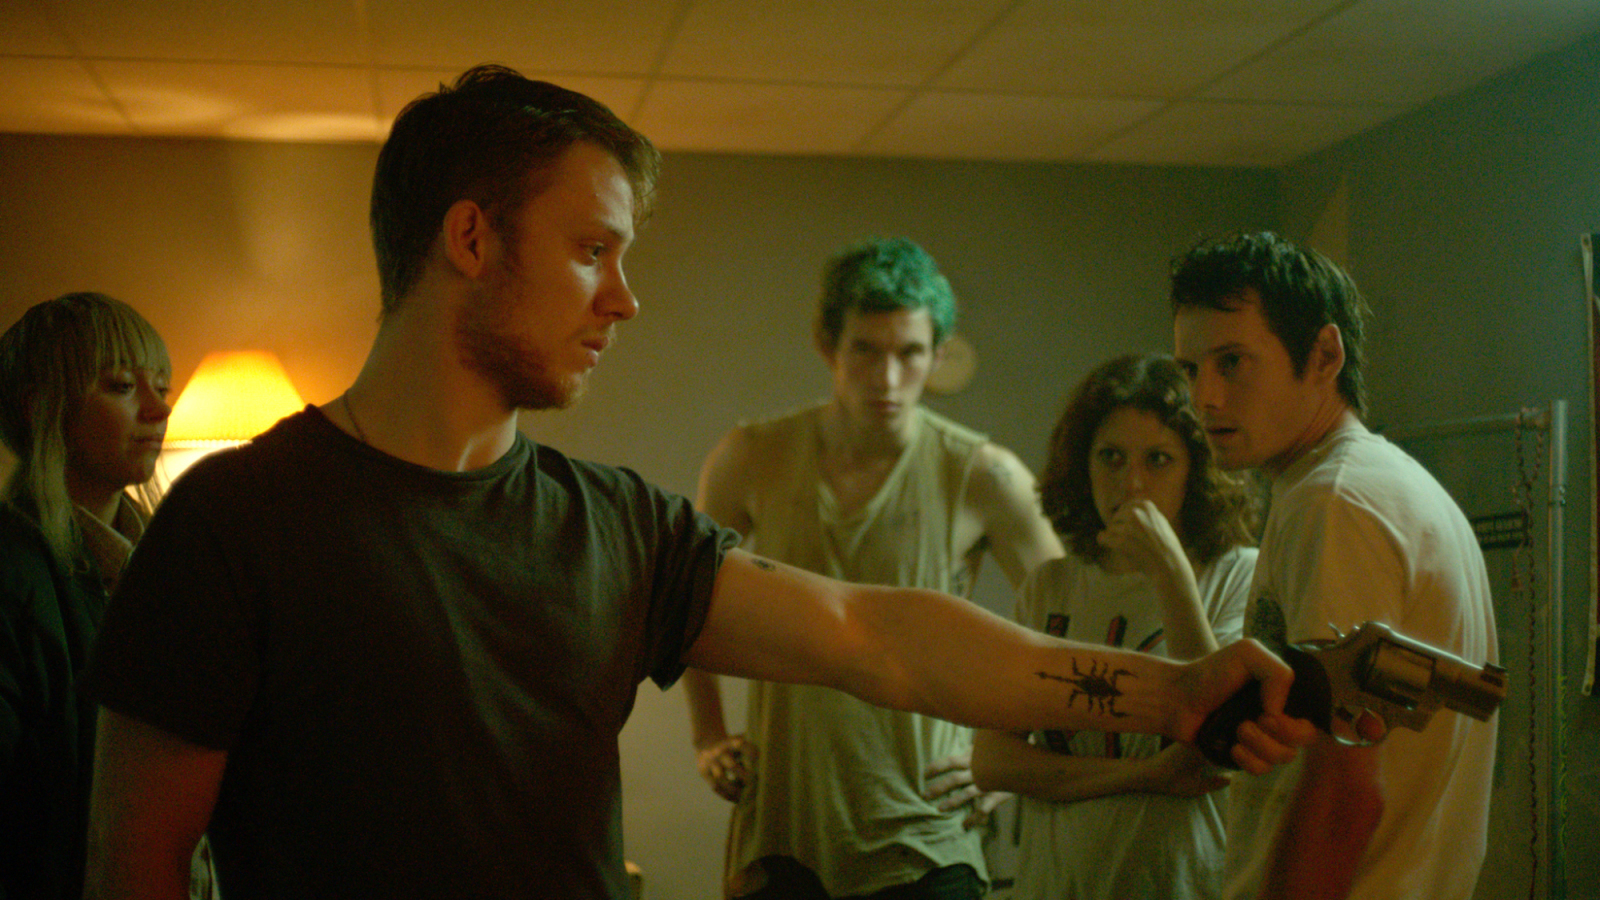 MOVIES: Green Room - Review